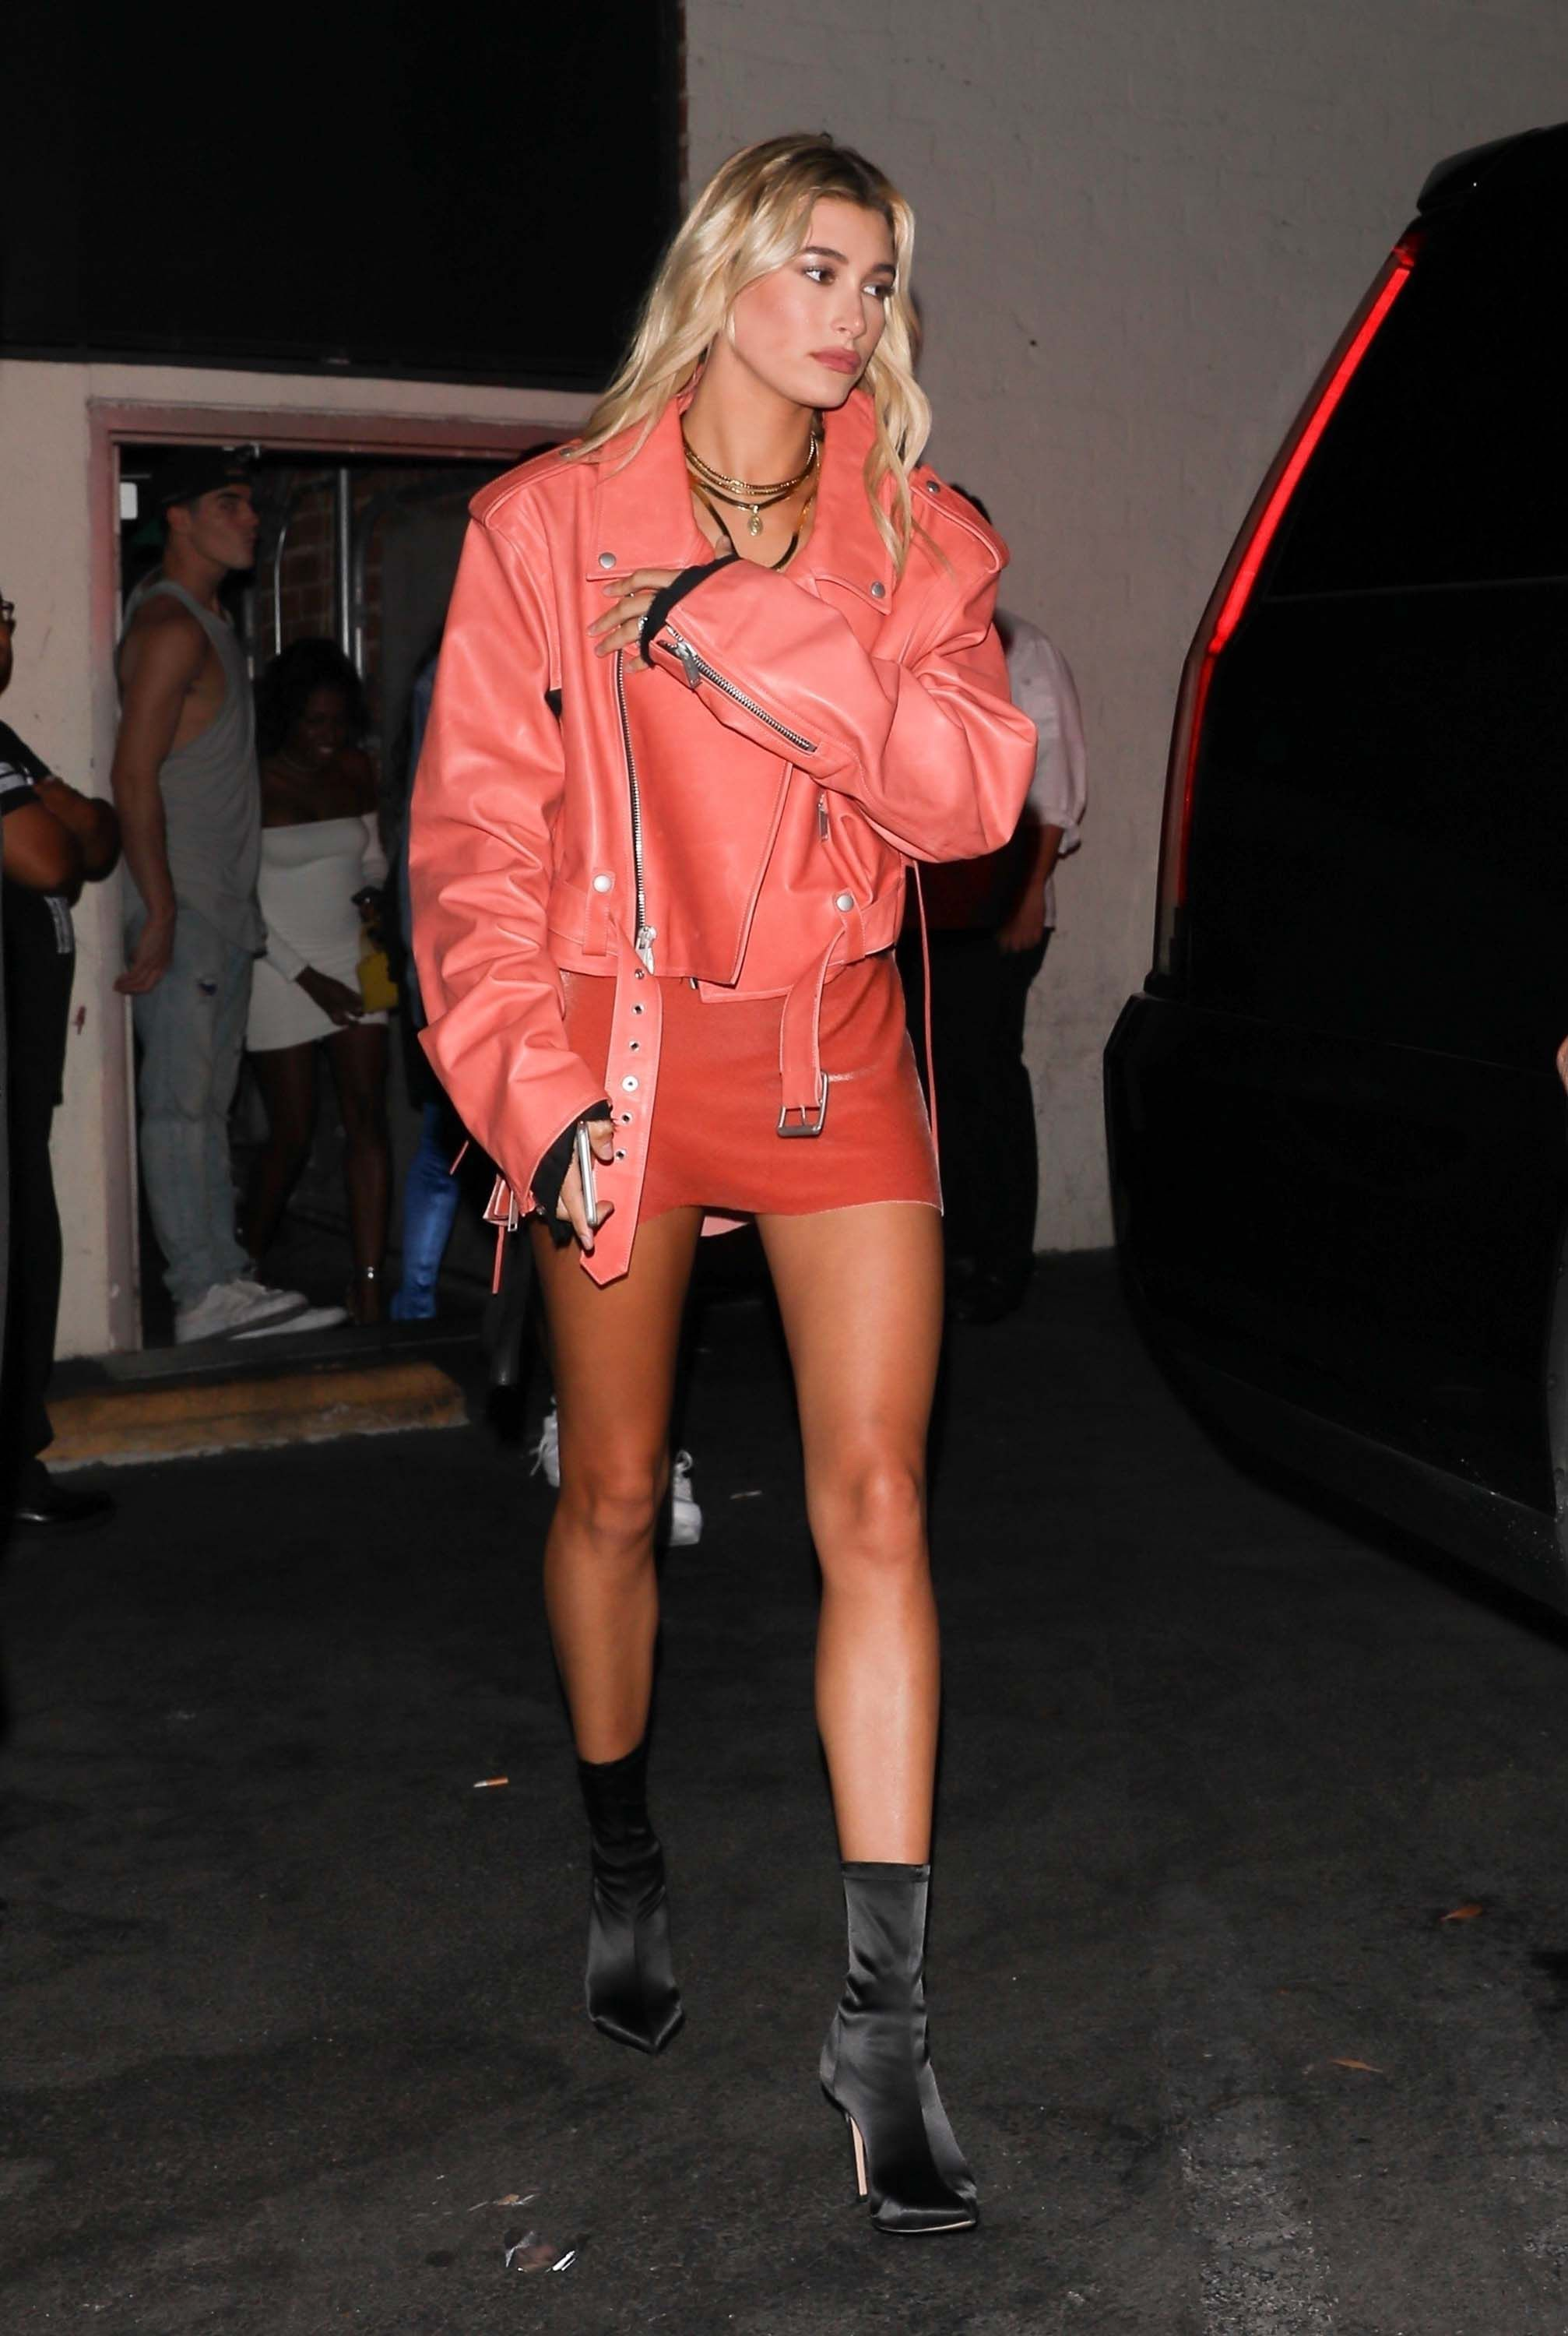 Hailey baldwin night out style leaving delilahs night club in west hollywood nudes (76 images)